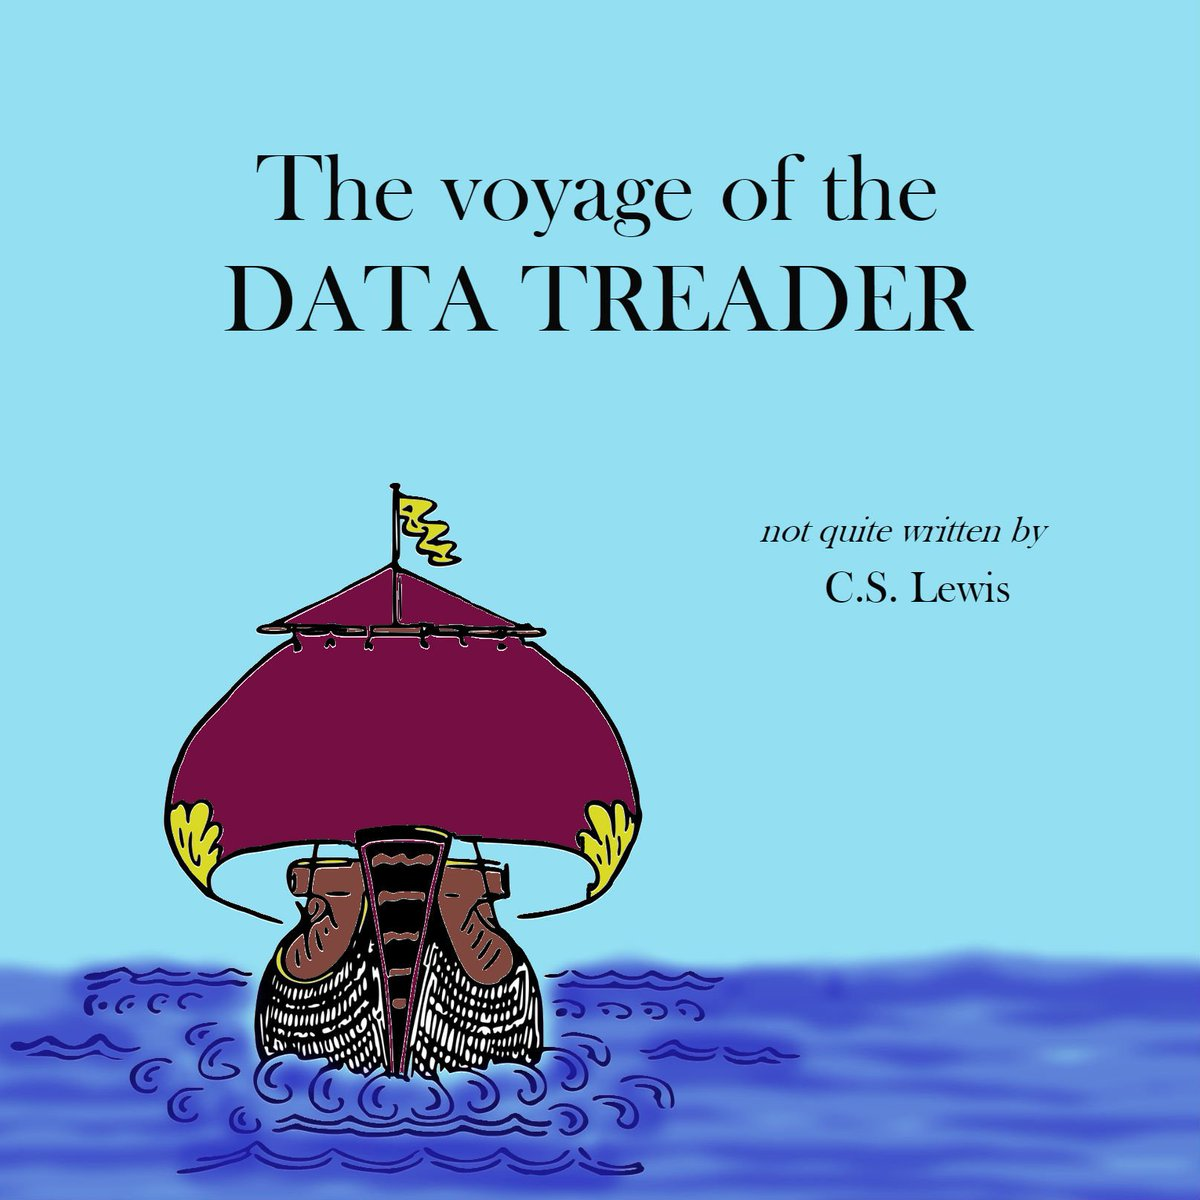 Want to learn data skills and chat about #opendata in libraries? Join us in Liverpool on 20th November  https://www. eventbrite.co.uk/e/voyage-of-th e-data-treader-library-data-camp-2017-registration-37308706345 &nbsp; …  #datatreaders<br>http://pic.twitter.com/3yUGnhQ8SG